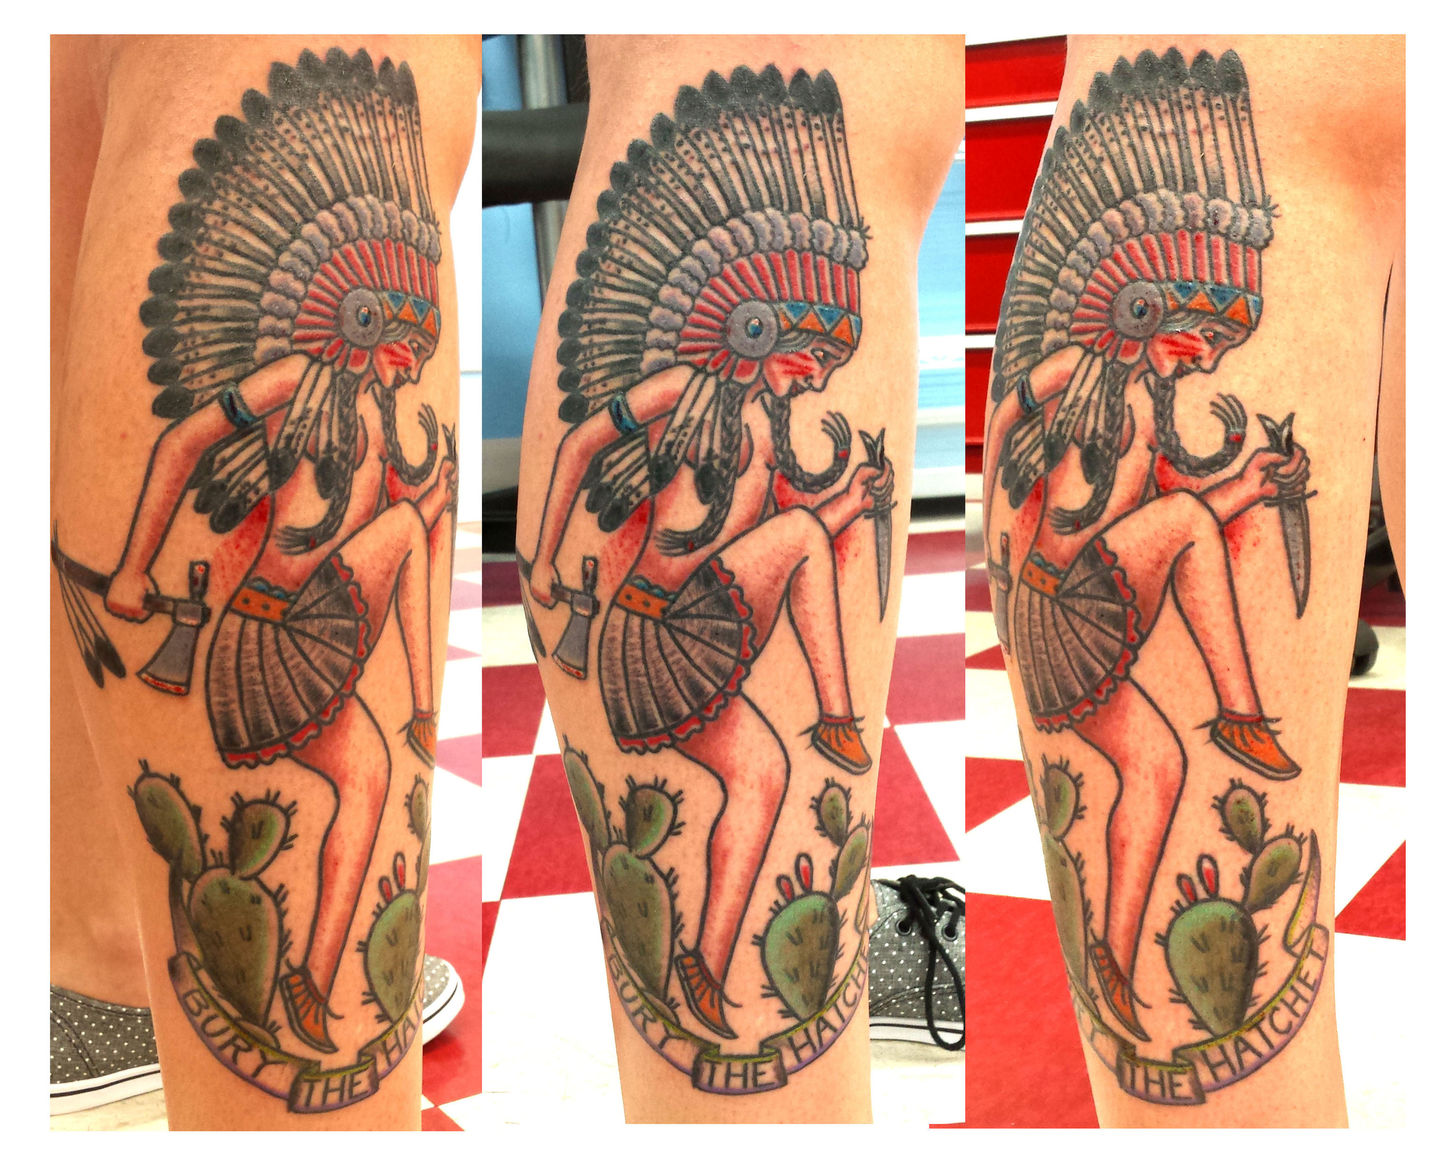 Unclejoshtraditional Tattoos Traditional Tattoo Color Tattoo Native